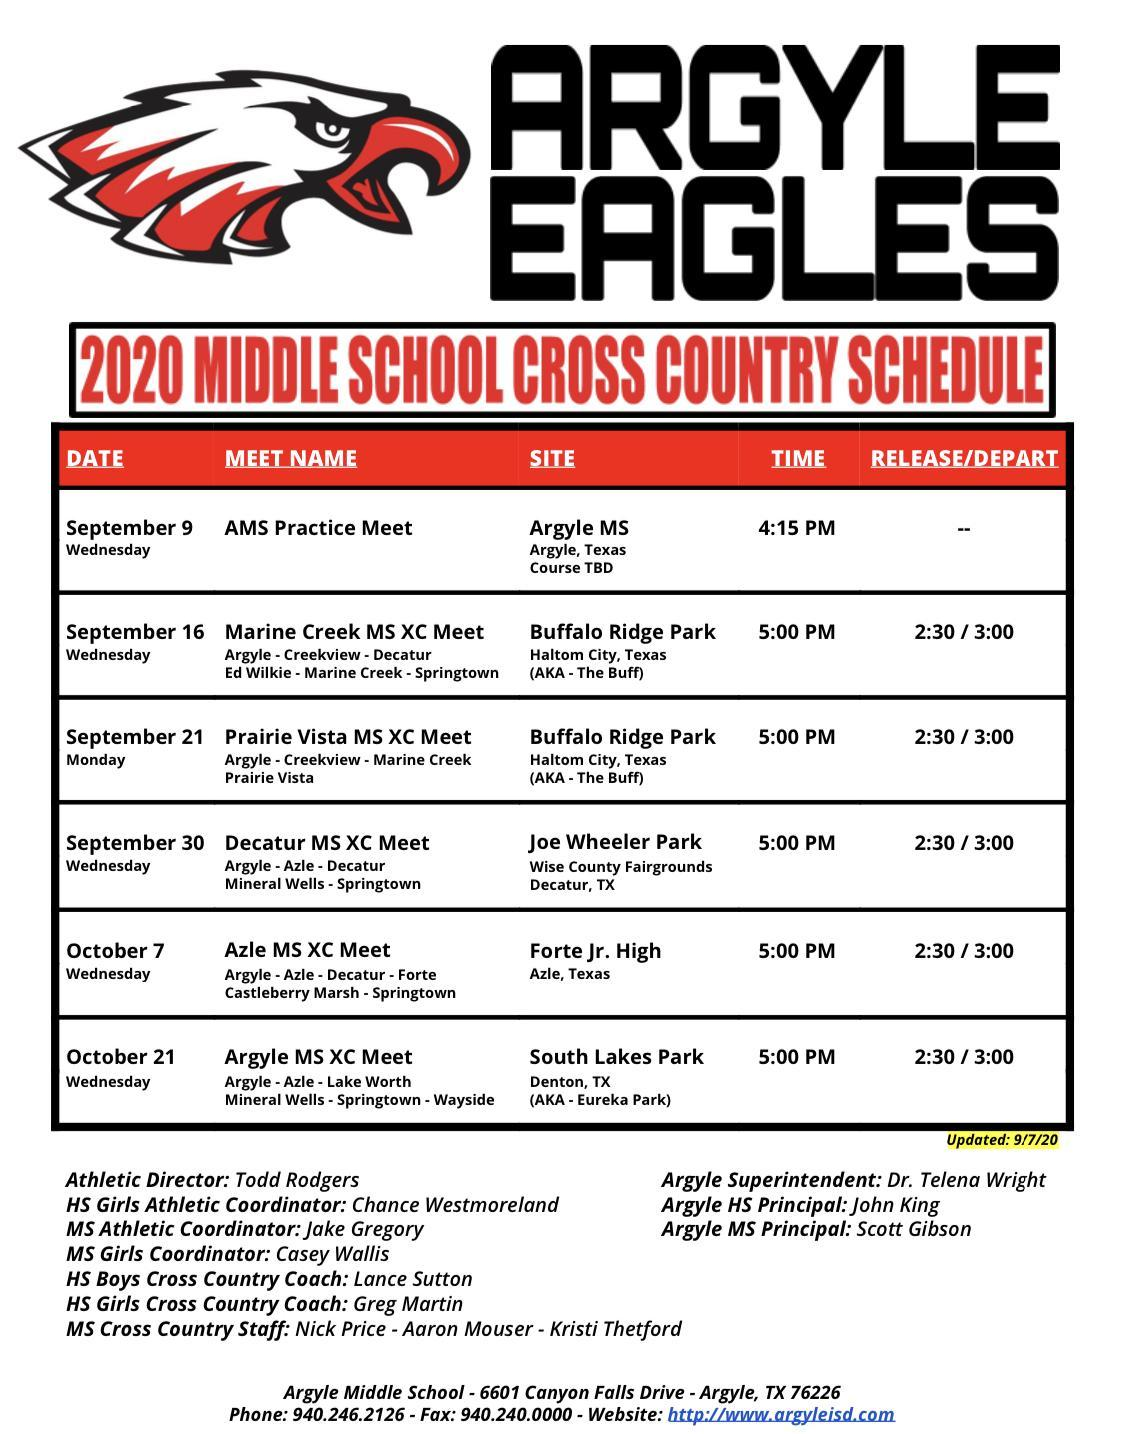 2020 CROSS COUNTRY SCHEDULE - UPDATED 9/7/20